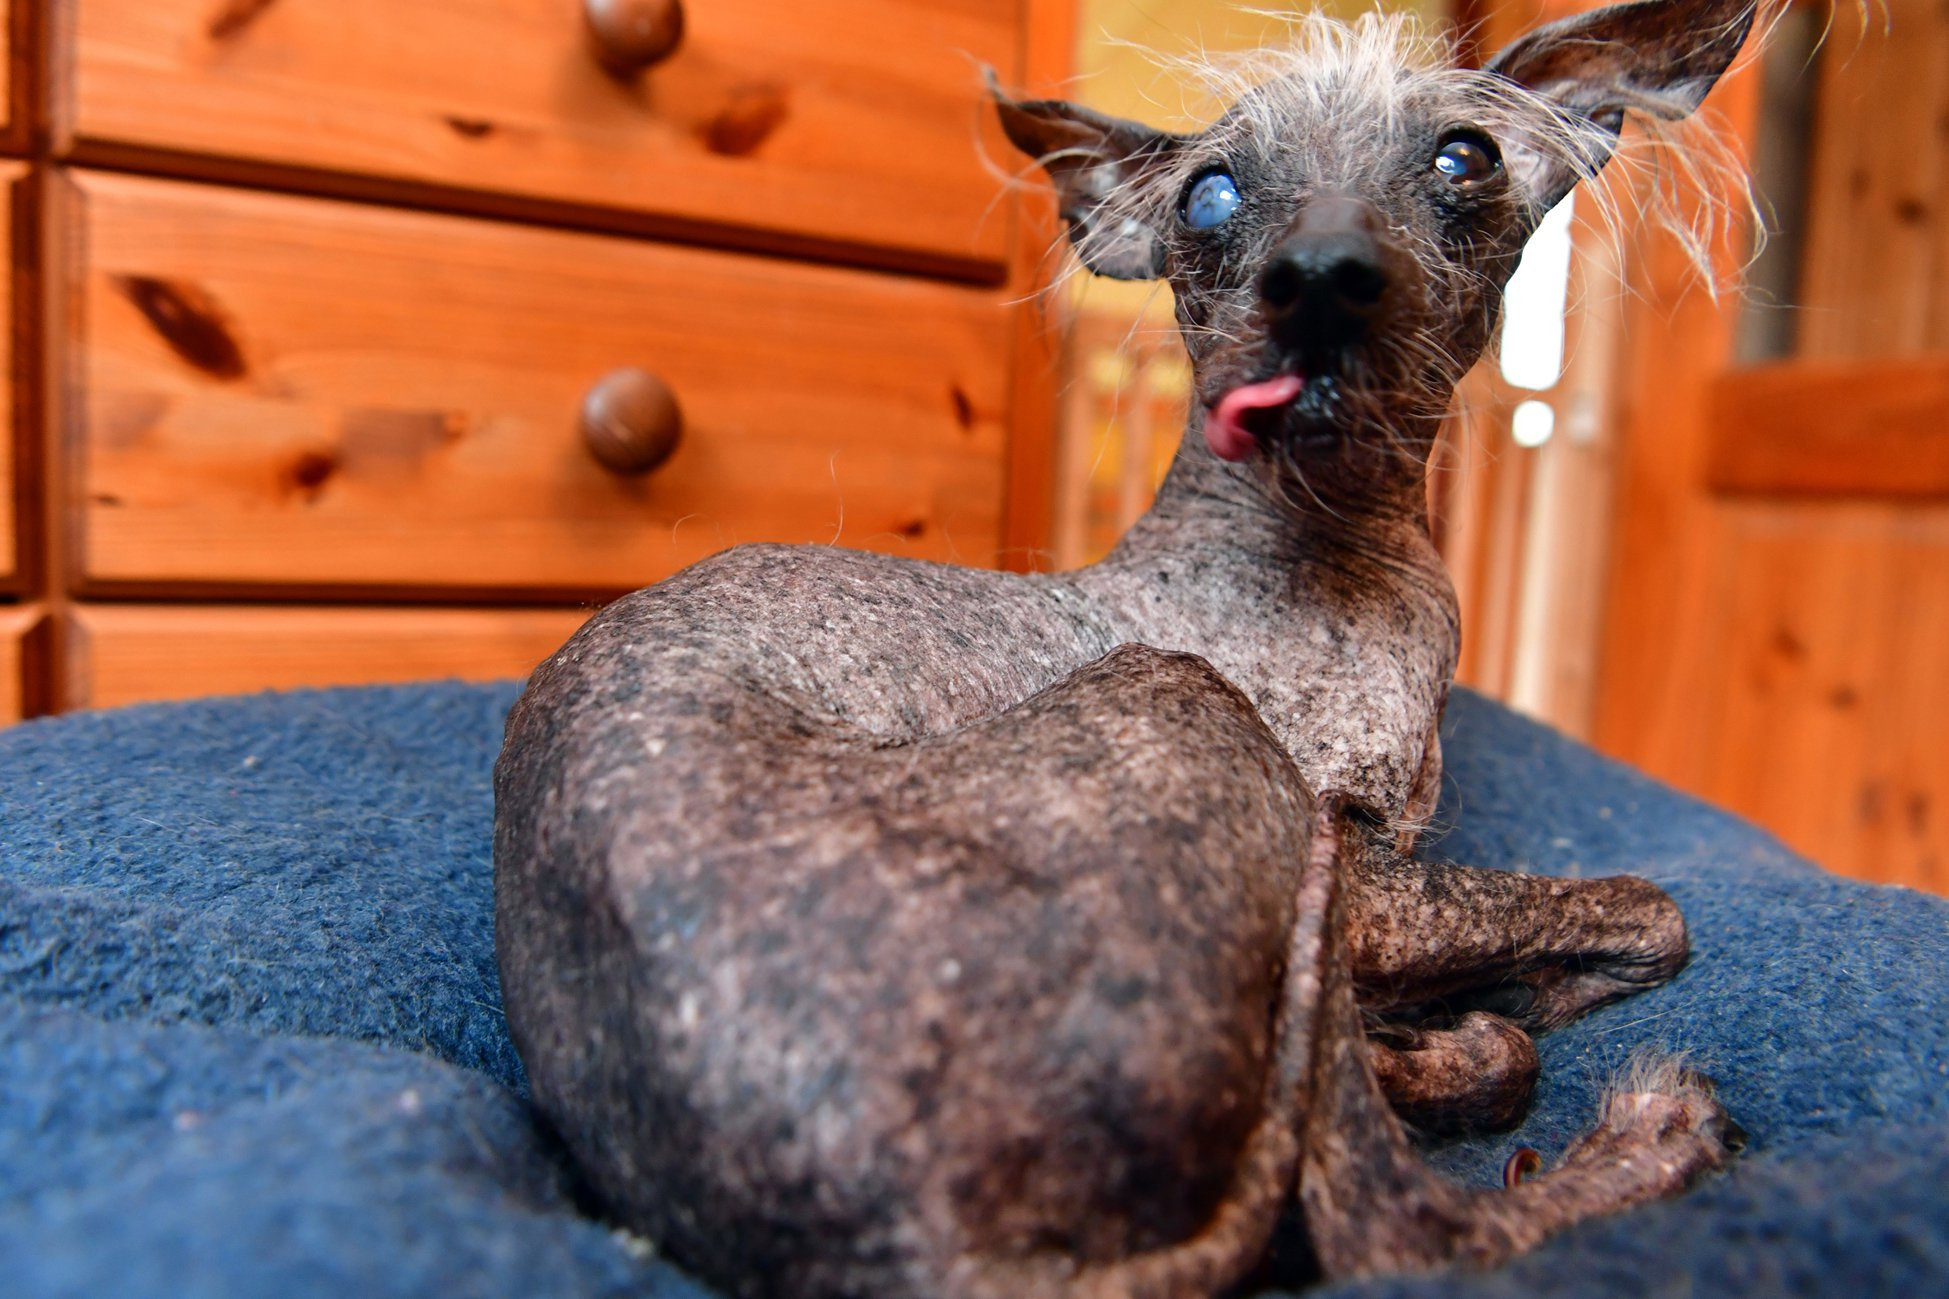 Storm Shayler's Chinese crested dog Chase was awarded third place in the World's Ugliest Dog competition in 2017. Storm suffered from post-traumatic stress disorder and social anxiety following the death of her mother when she was 18. Chase acts as her service dog helping her manage social situations.